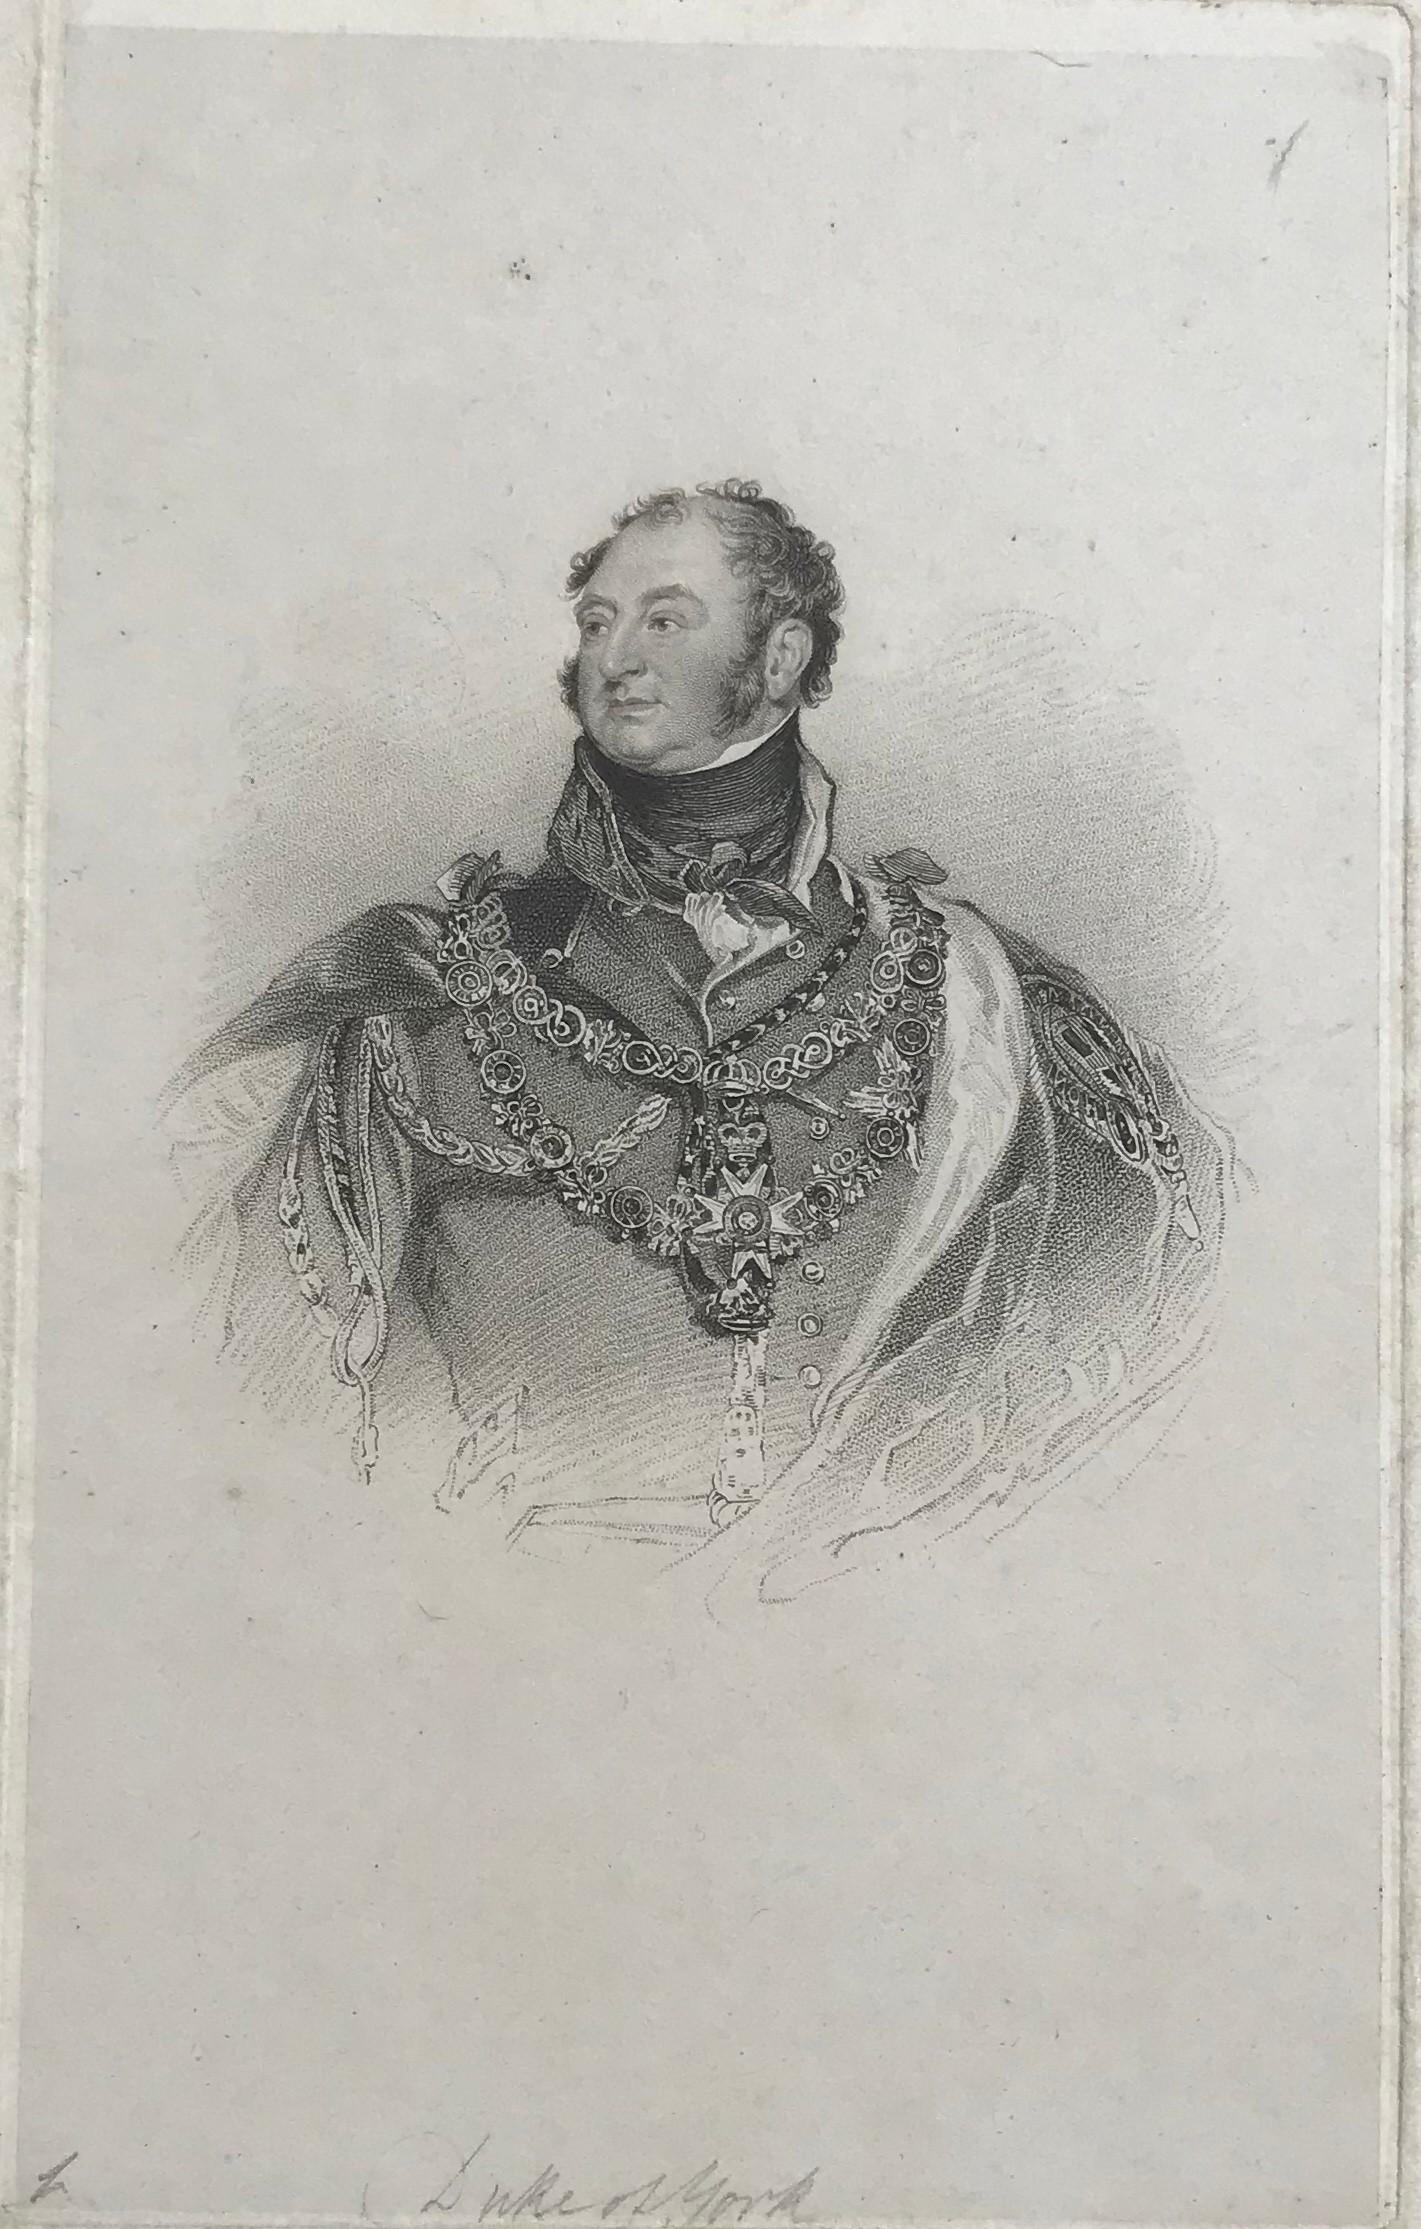 Lot 591 - AFTER SIR THOMAS LAWRENCE, 19TH CENTURY PROOF ETCHING/ENGRAVING BEFORE LETTERS Portrait of his Royal